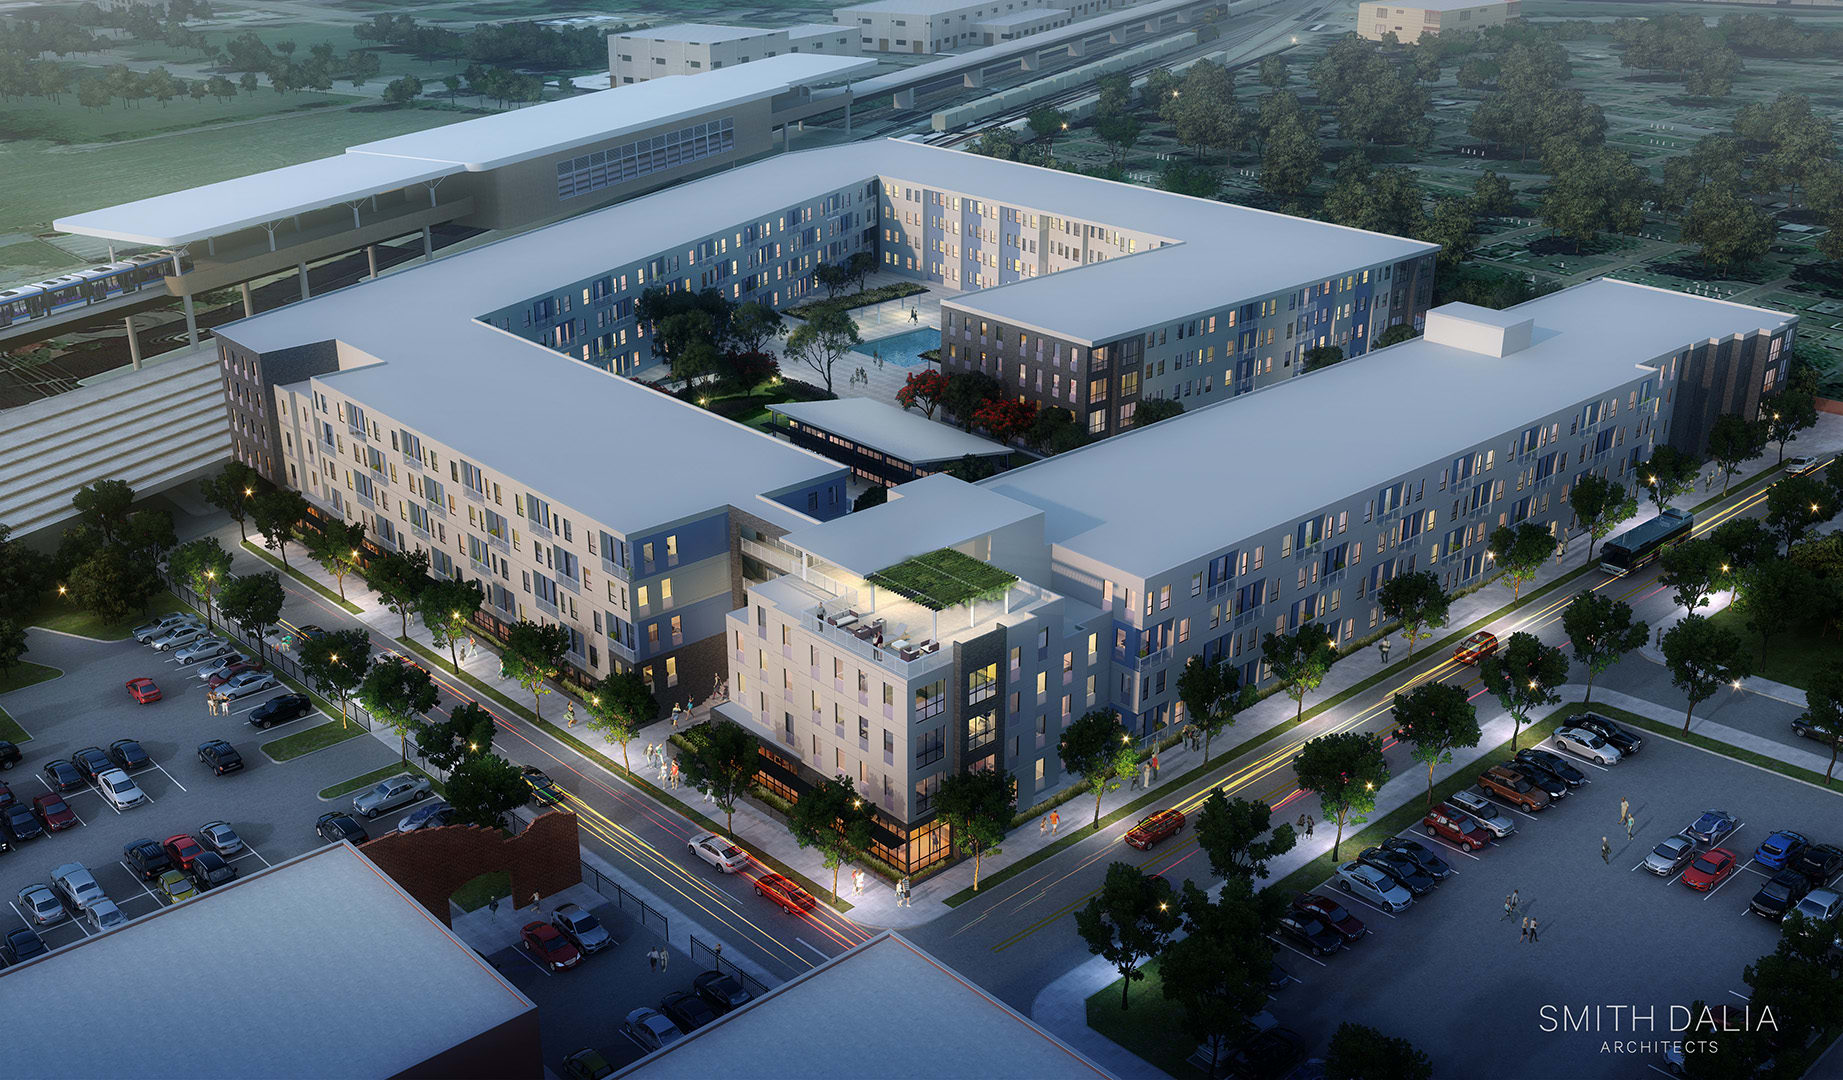 An aerial rendering of the proposed development shows how new construction would fit onto existing surface parking.